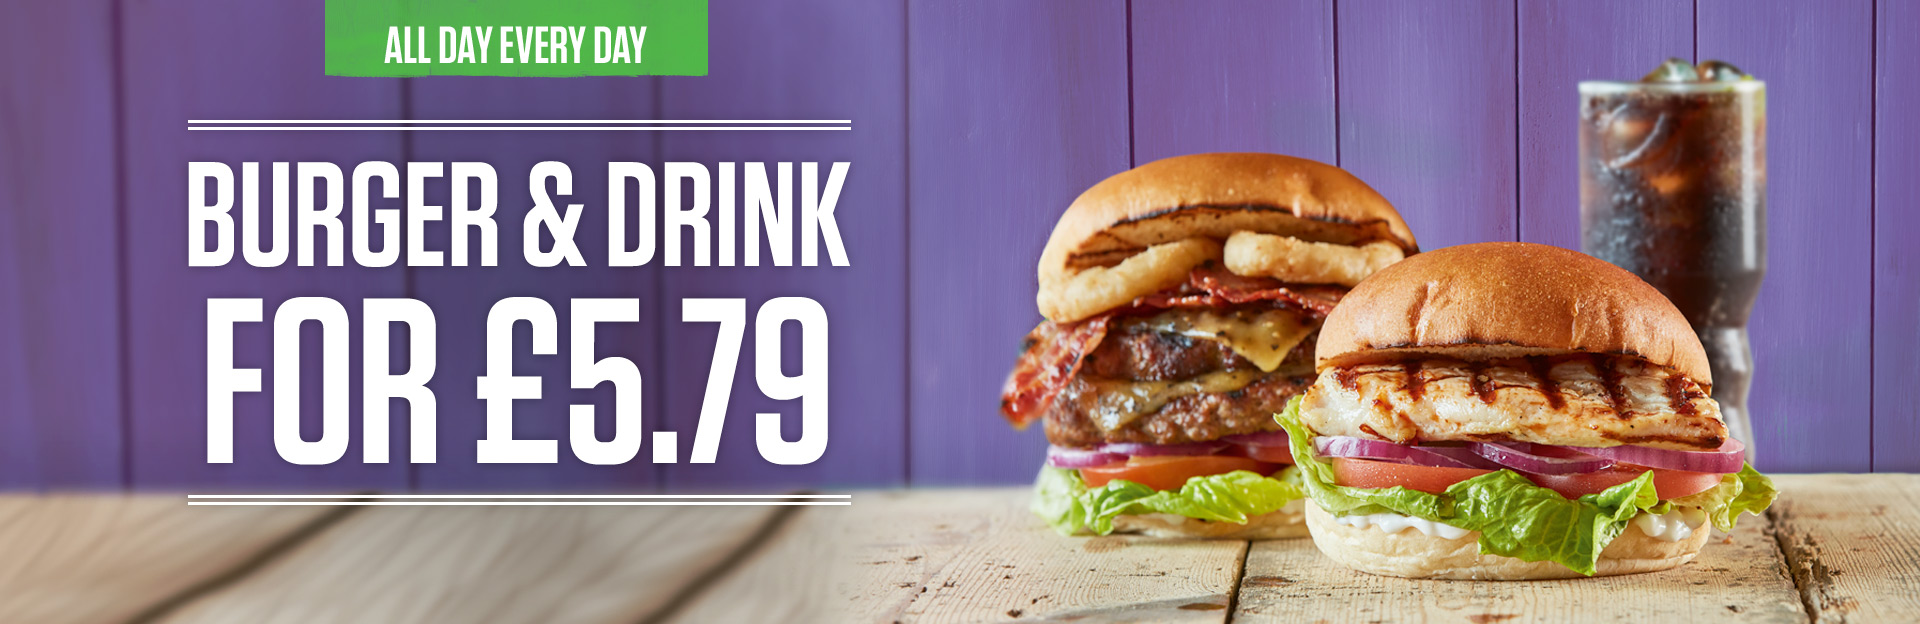 Burger and Drink Deal at The Coundon Hotel